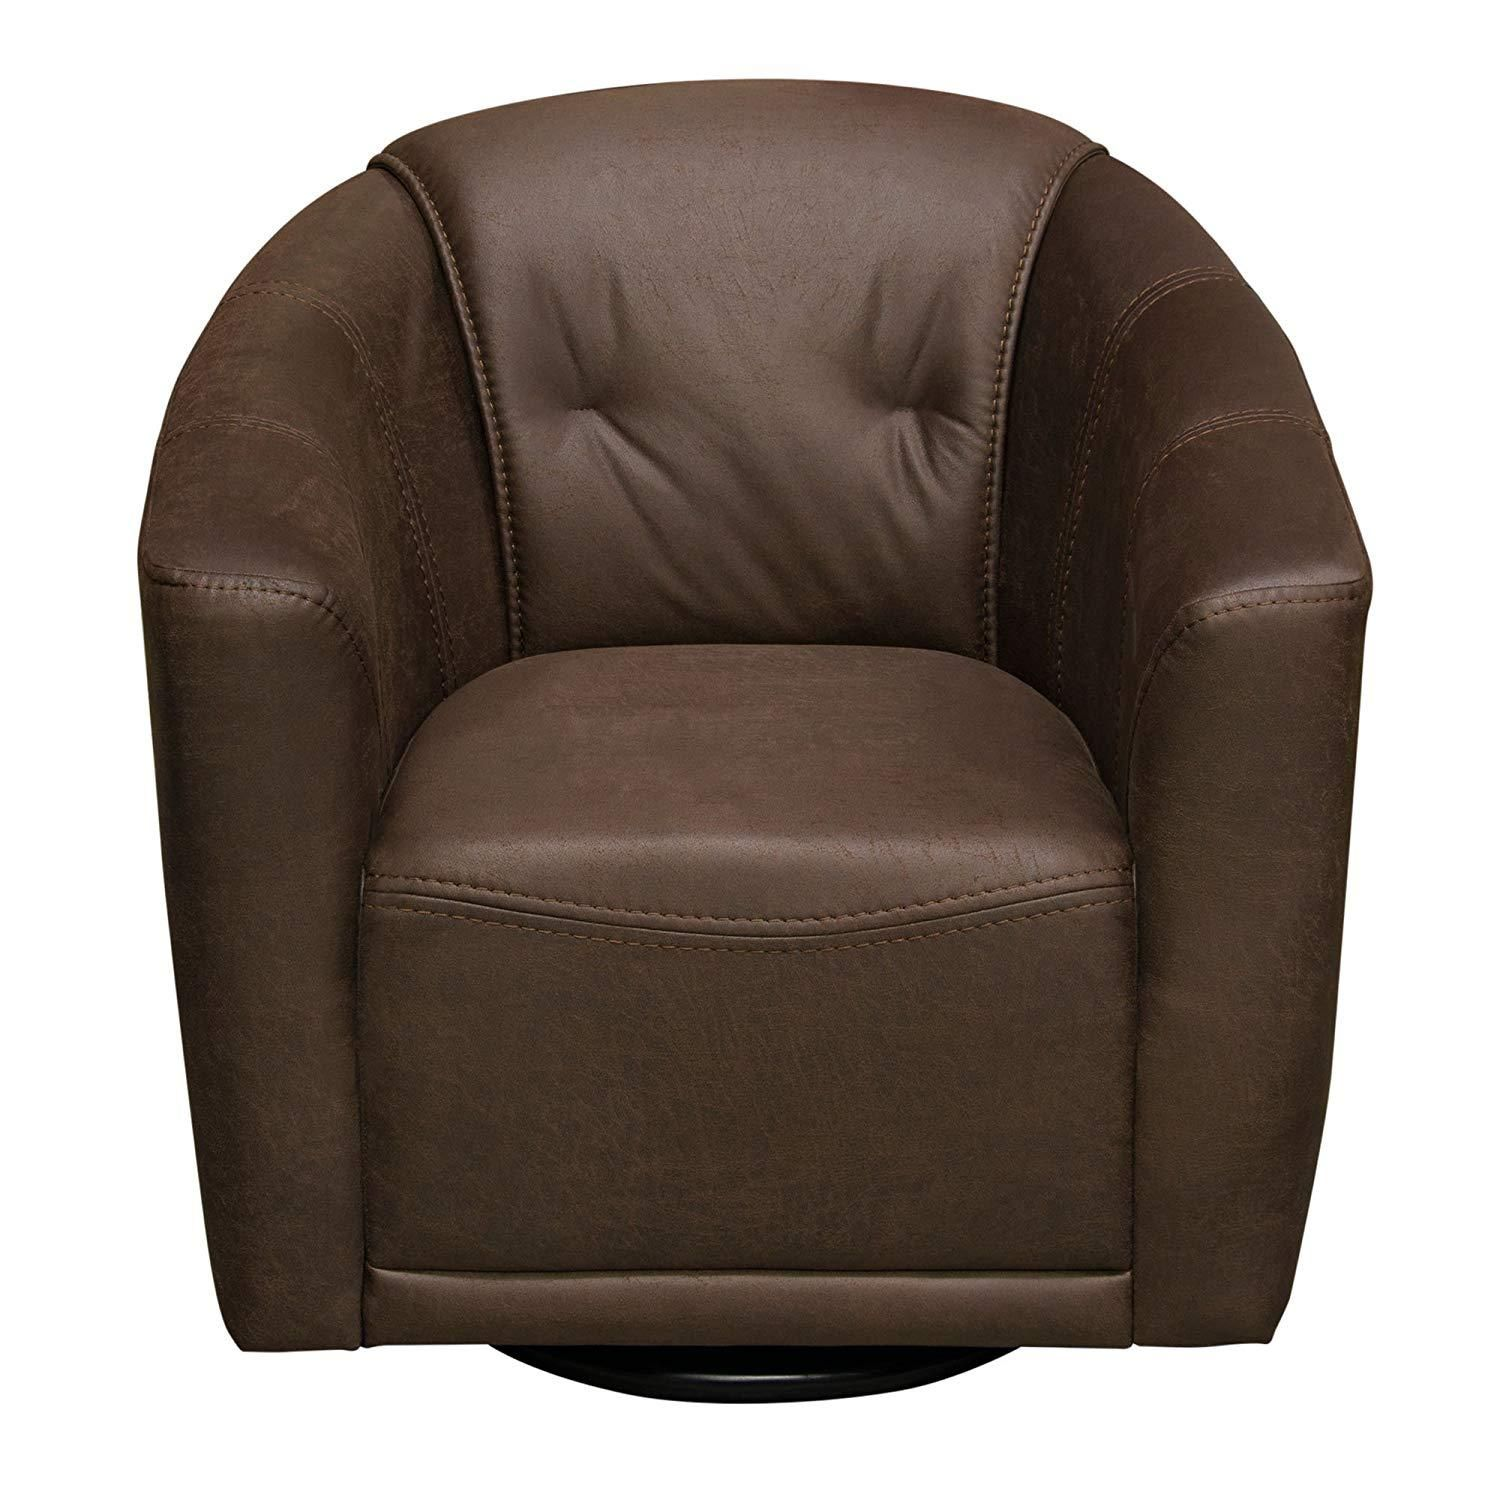 Astonishing Diamond Sofa Swivel Accent Chair In Chocolate Brown Fabric Pabps2019 Chair Design Images Pabps2019Com